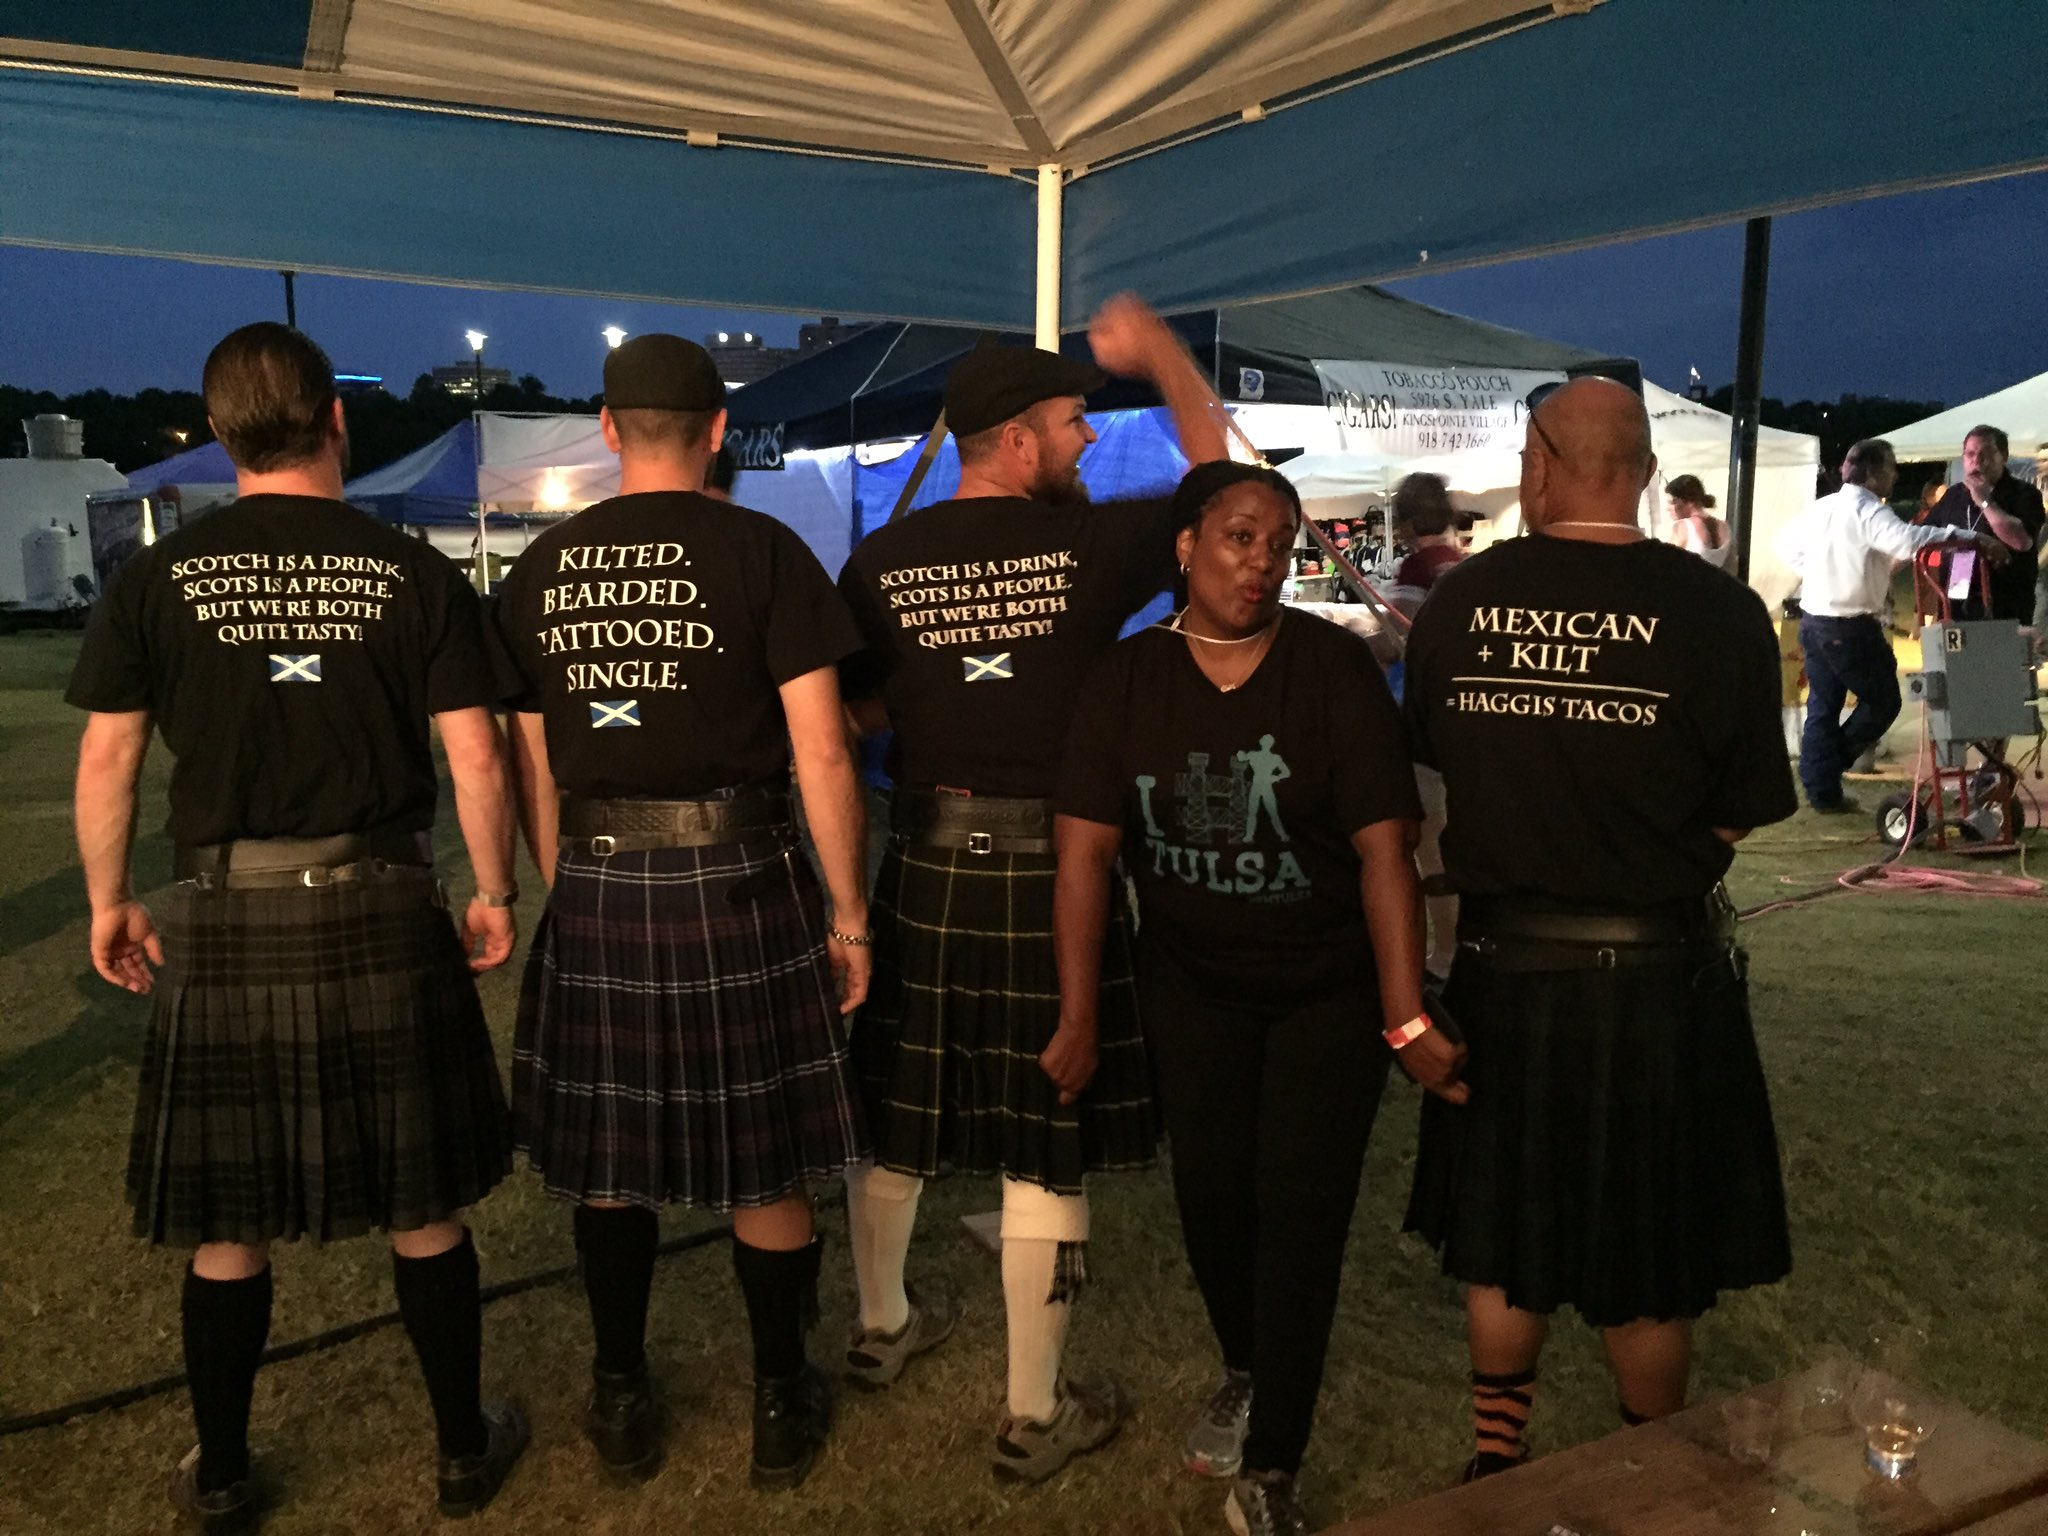 Our fearless @SMTulsa team leader, @Partyaficionado & some #meninkilts @OKScotFest #SCOTFEST https://t.co/9bXJCuqkr2